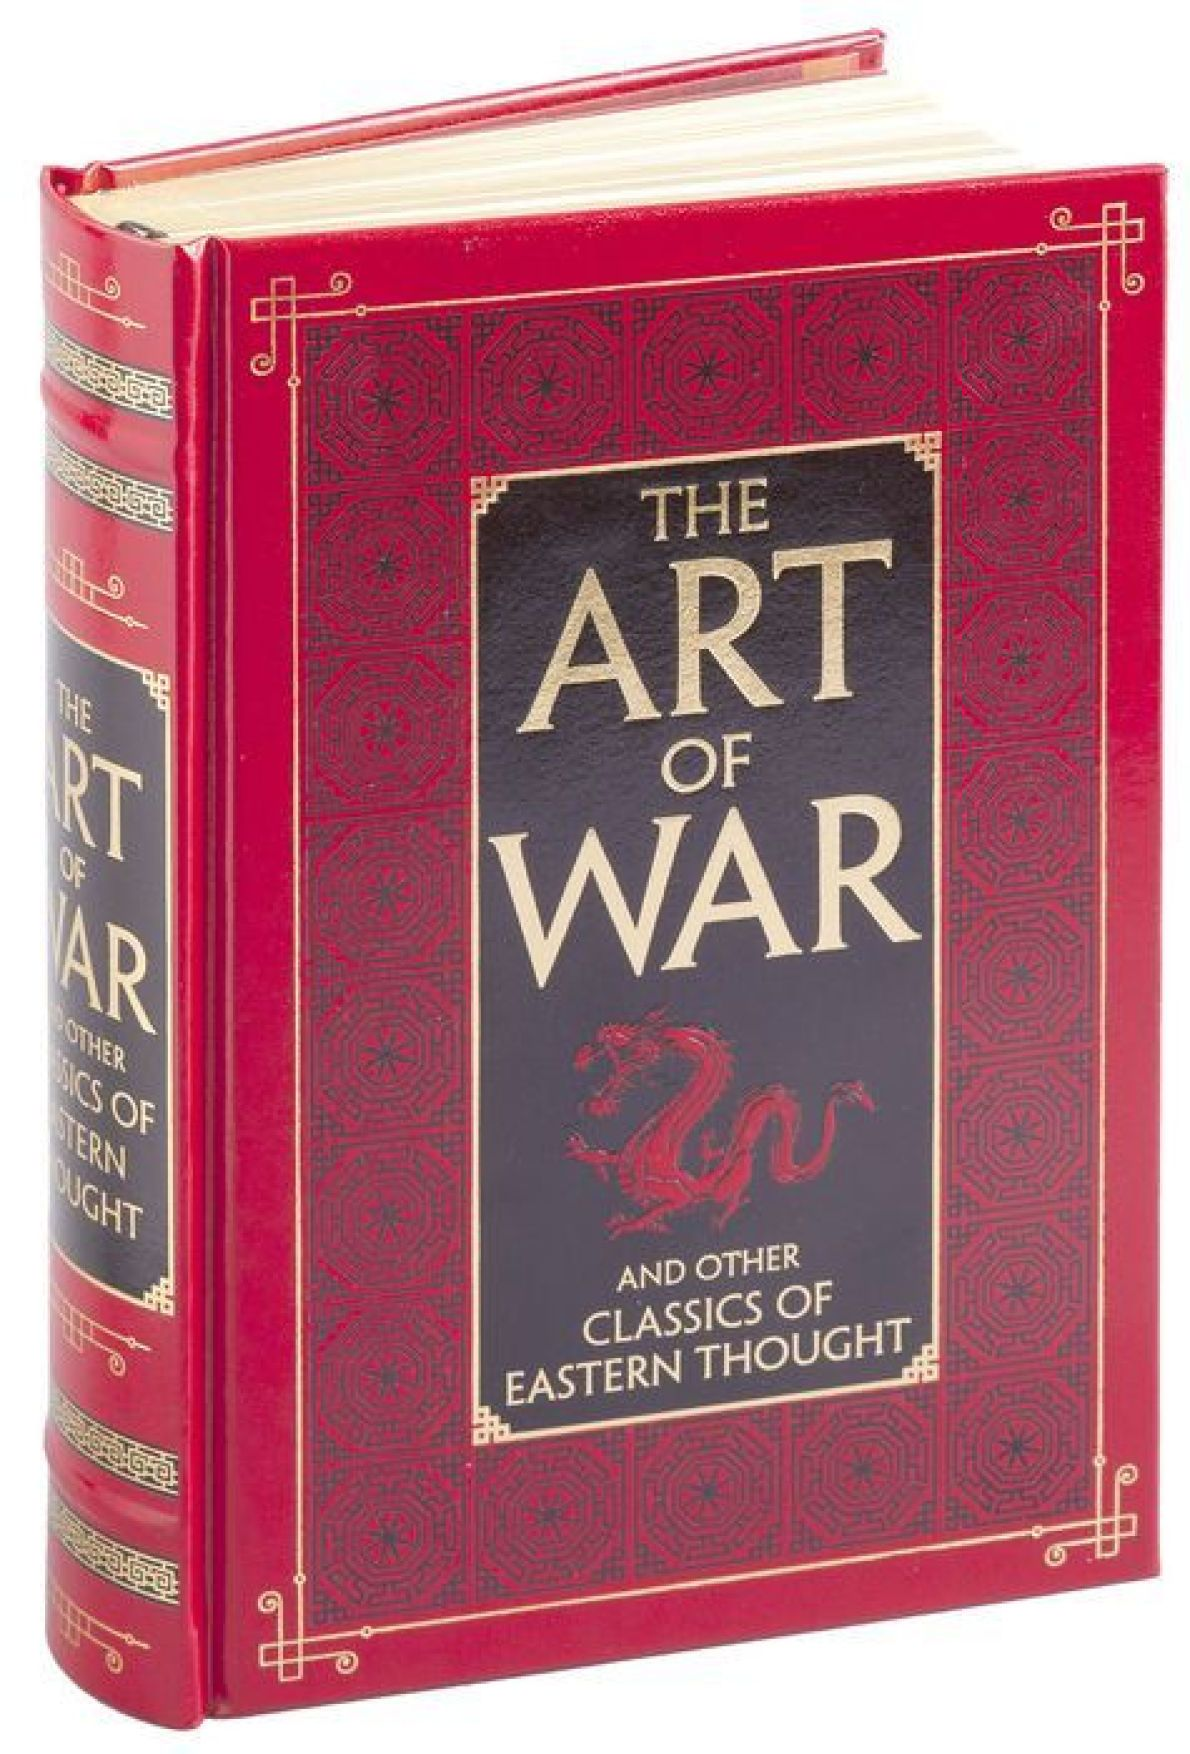 Art of war and other classics of eastern thought 0812